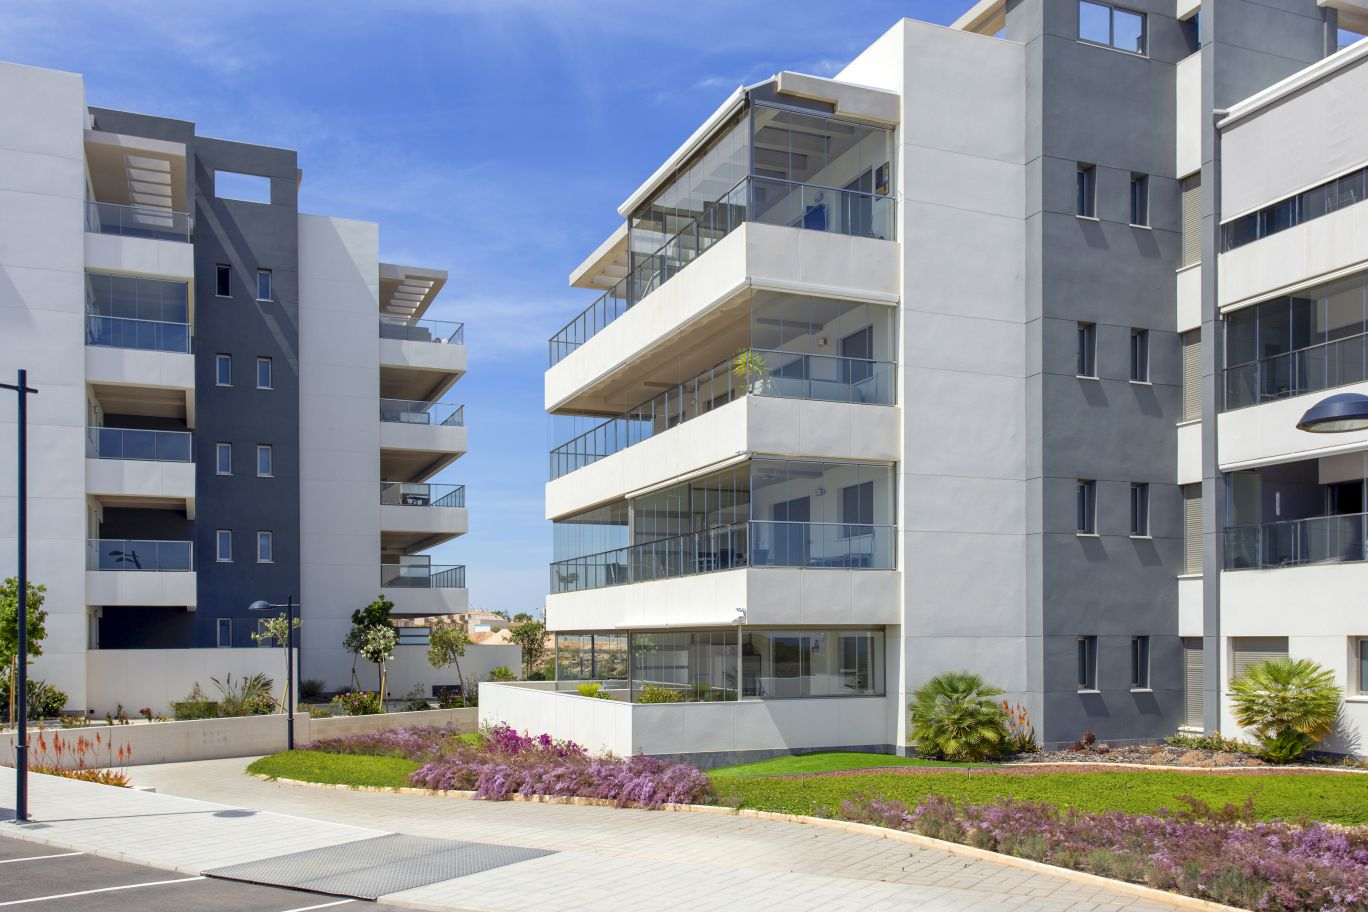 Apartments For Sale with 2 Bedrooms, Terrace and Swimming Pool in Orihuela Costa